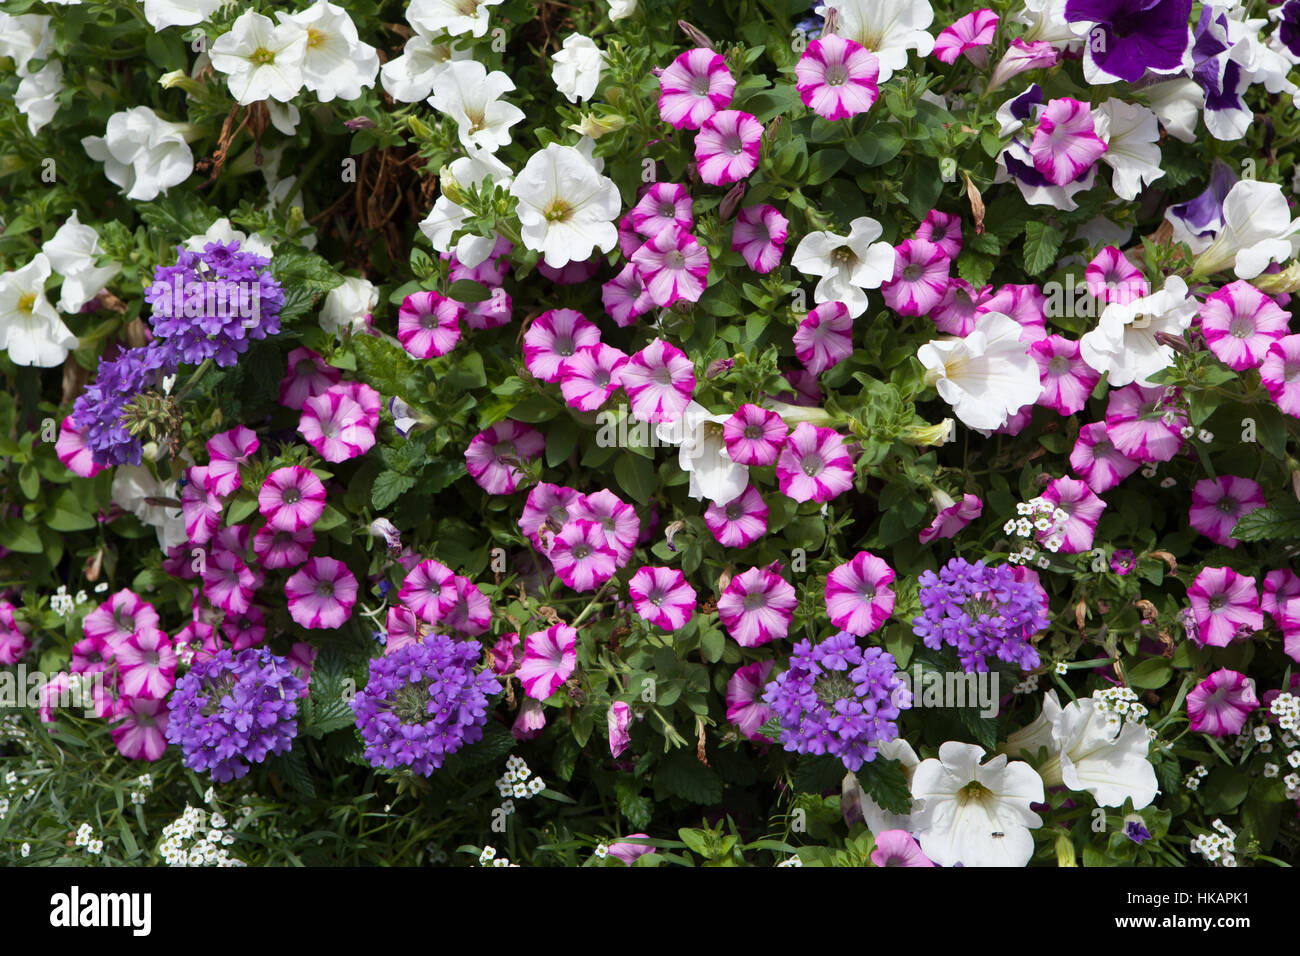 Petunia flowers. Background texture. France. - Stock Image